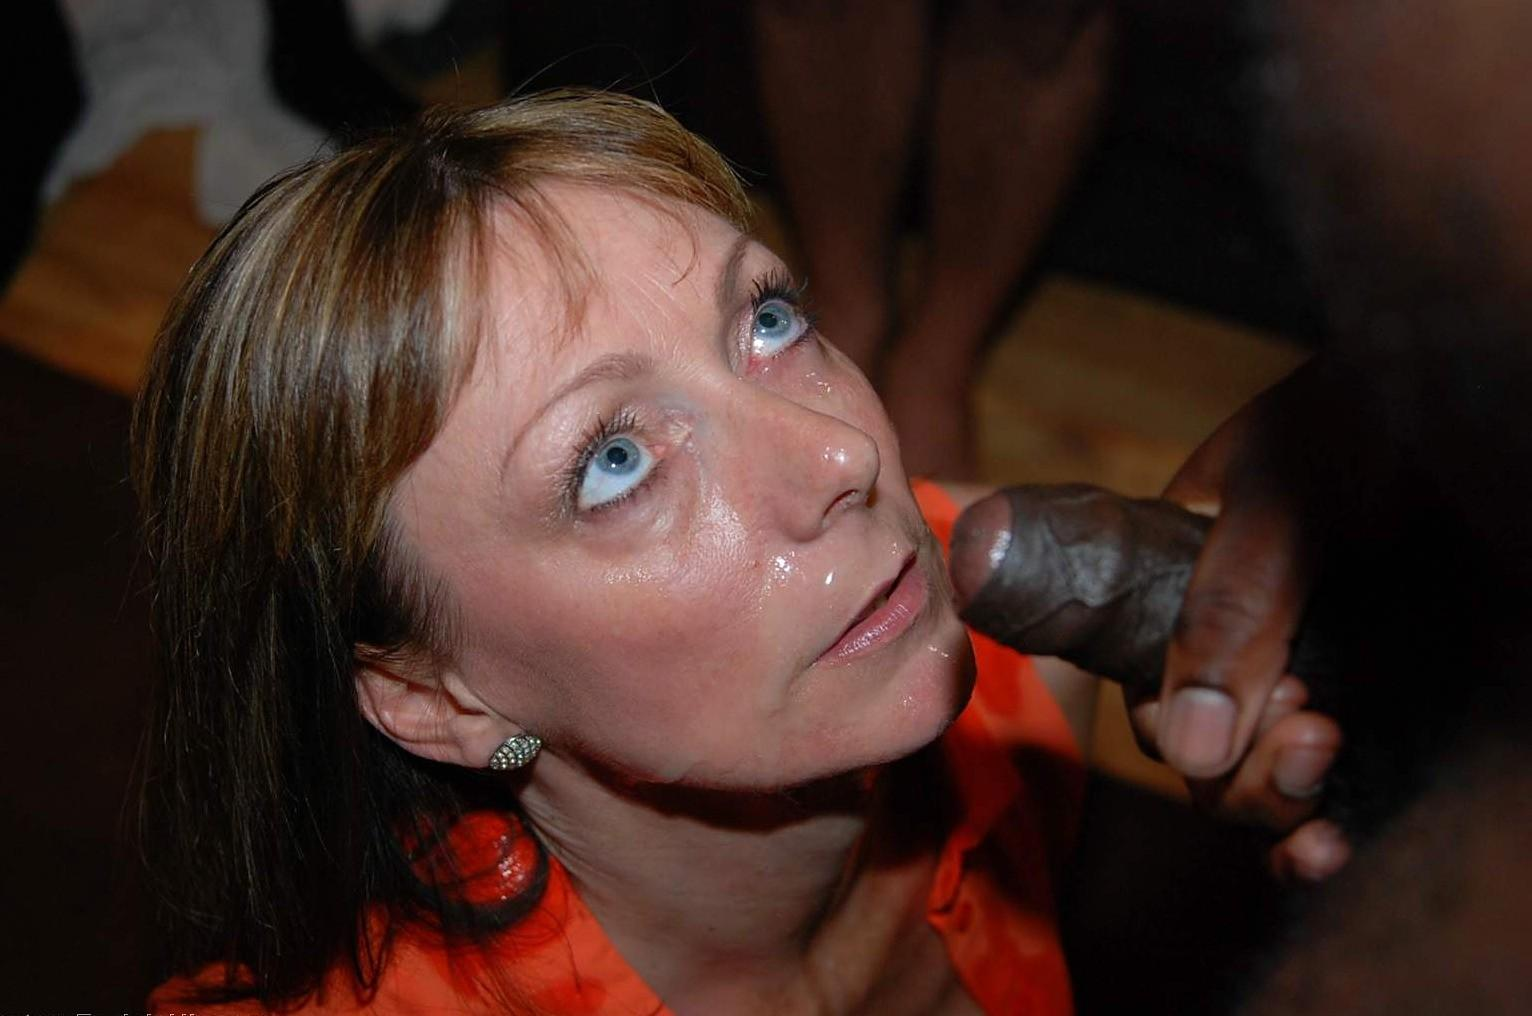 Thats Big titted milf porn disgrace?